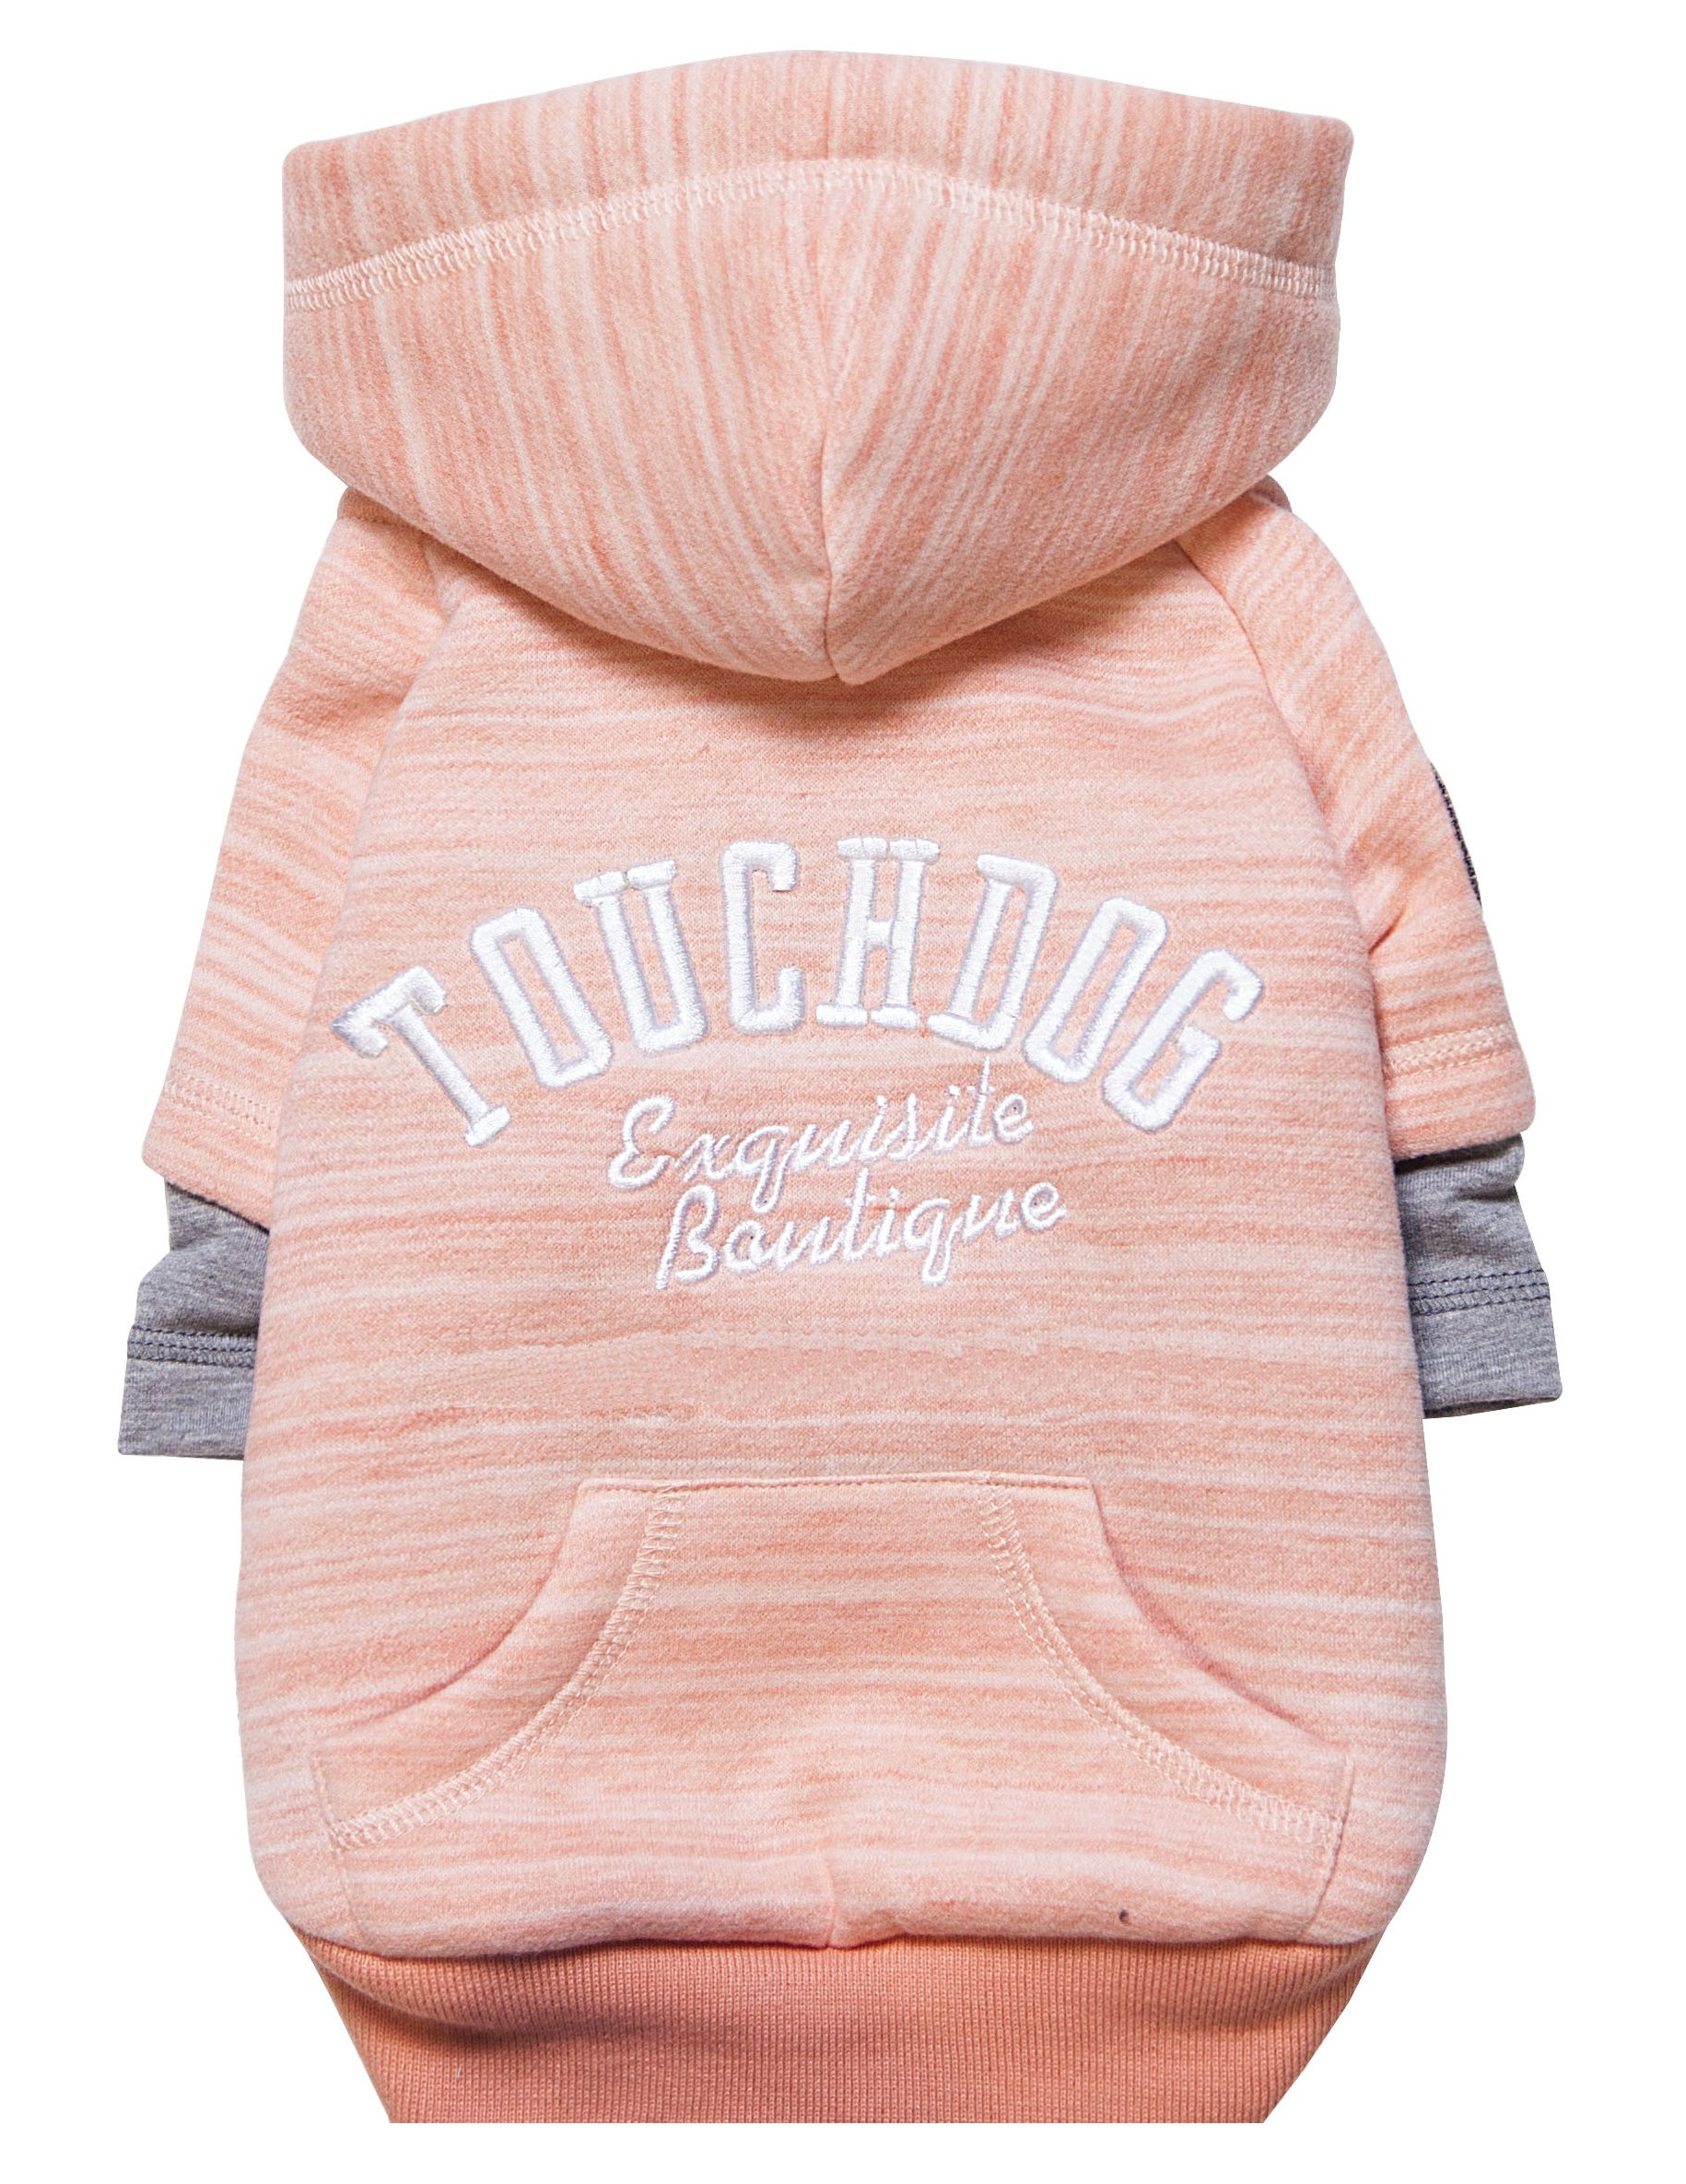 touchdog Hampton Beach' Designer Fashion Ultra-Plush Sand Blasted Pet Dog Hooded Sweater Hoodie, Small, Pink